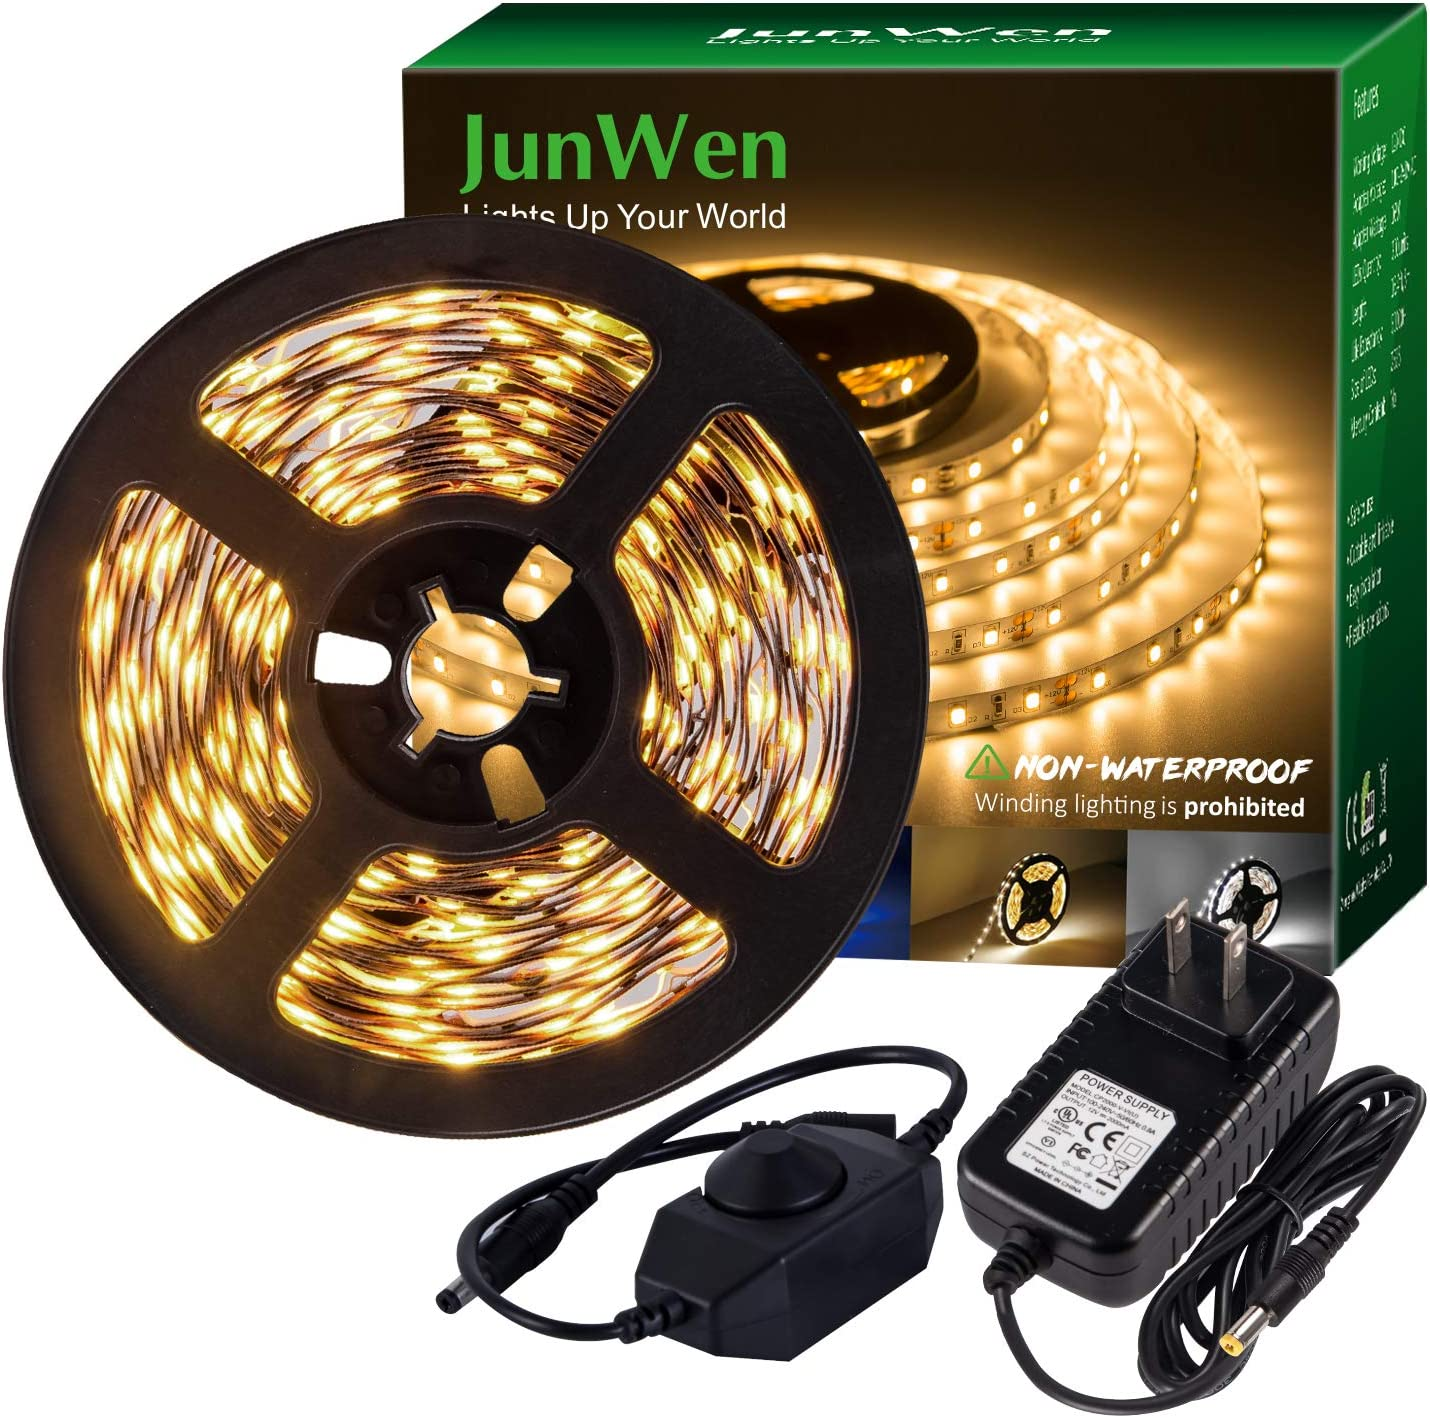 JUNWEN LED Strip All stores are sold Light Warm White S 12V Max 63% OFF Dimmable Soft Lights